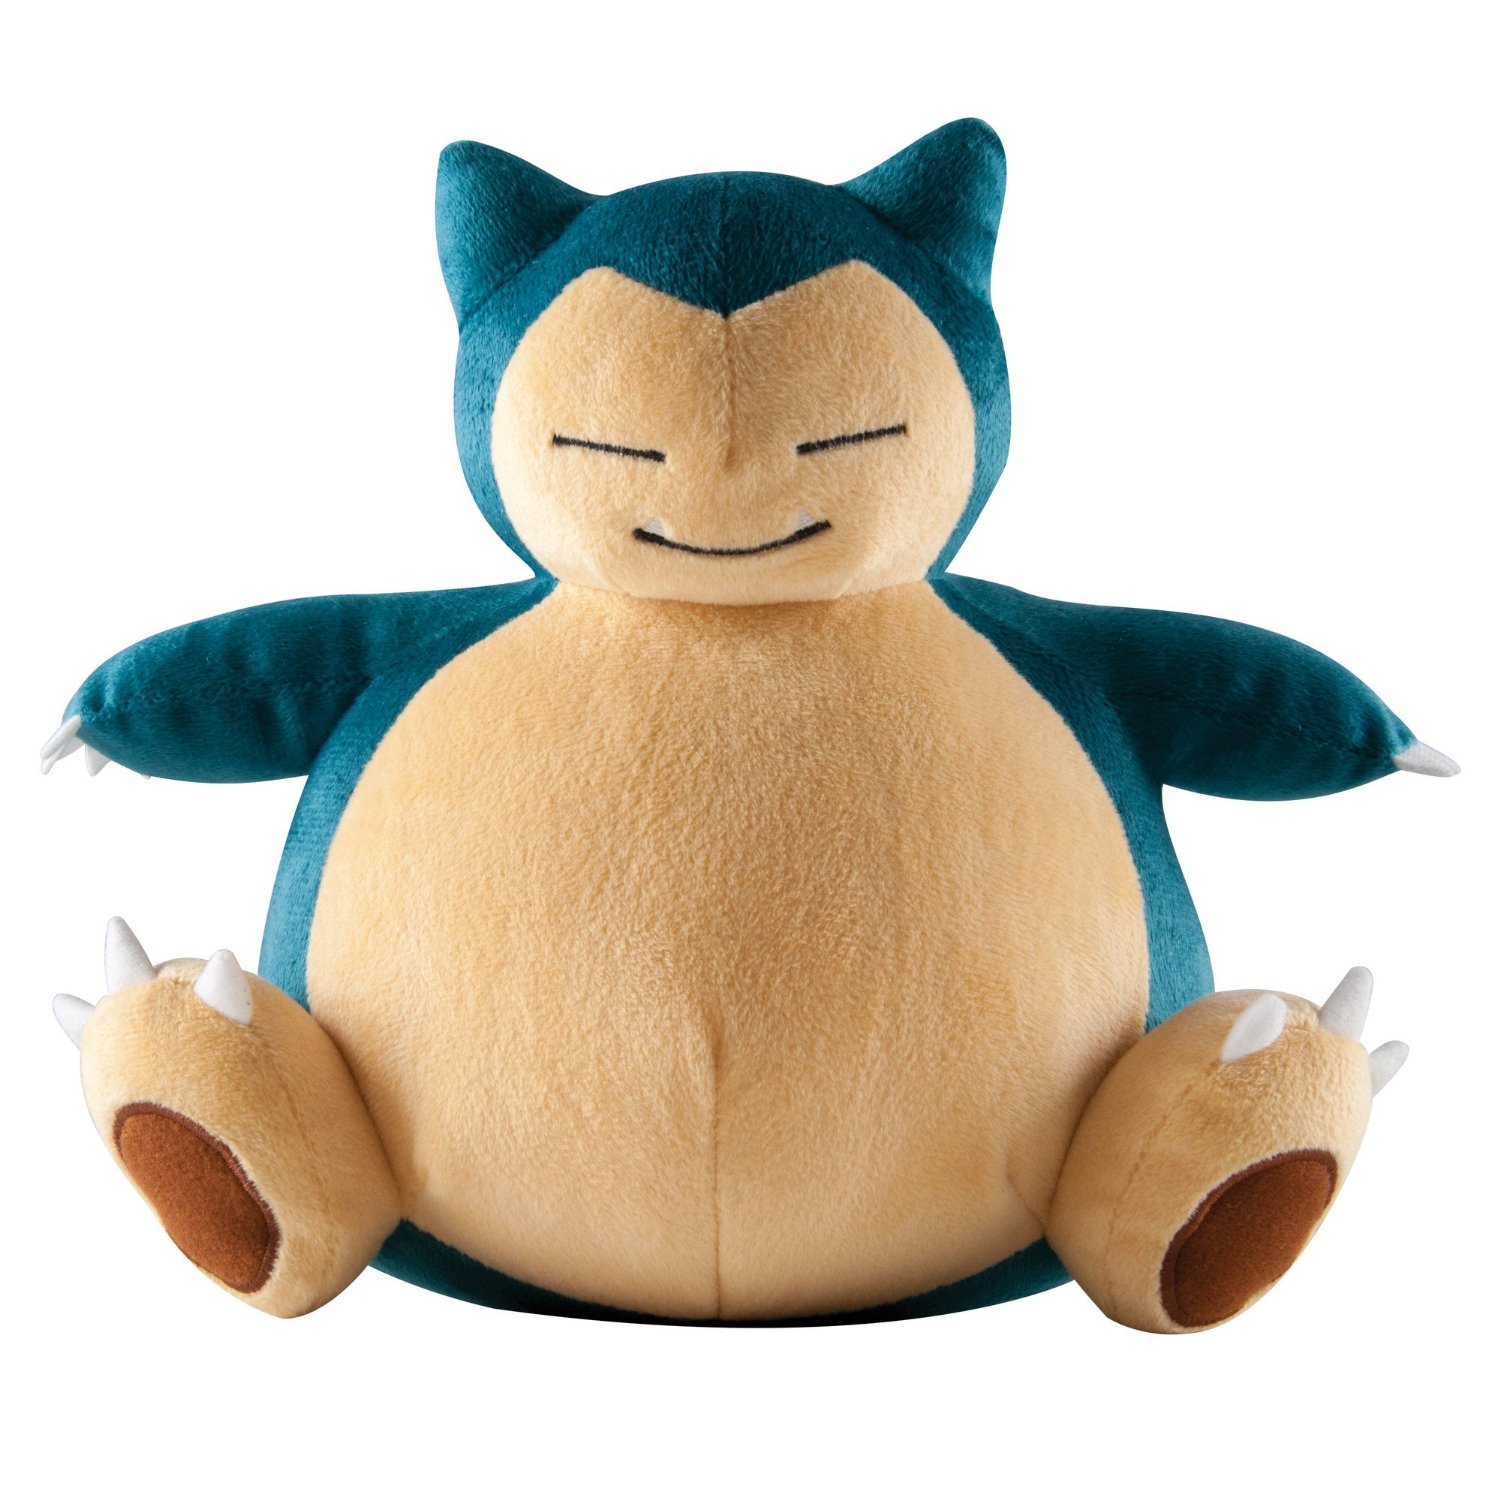 1. Snorlax Plush Pillow